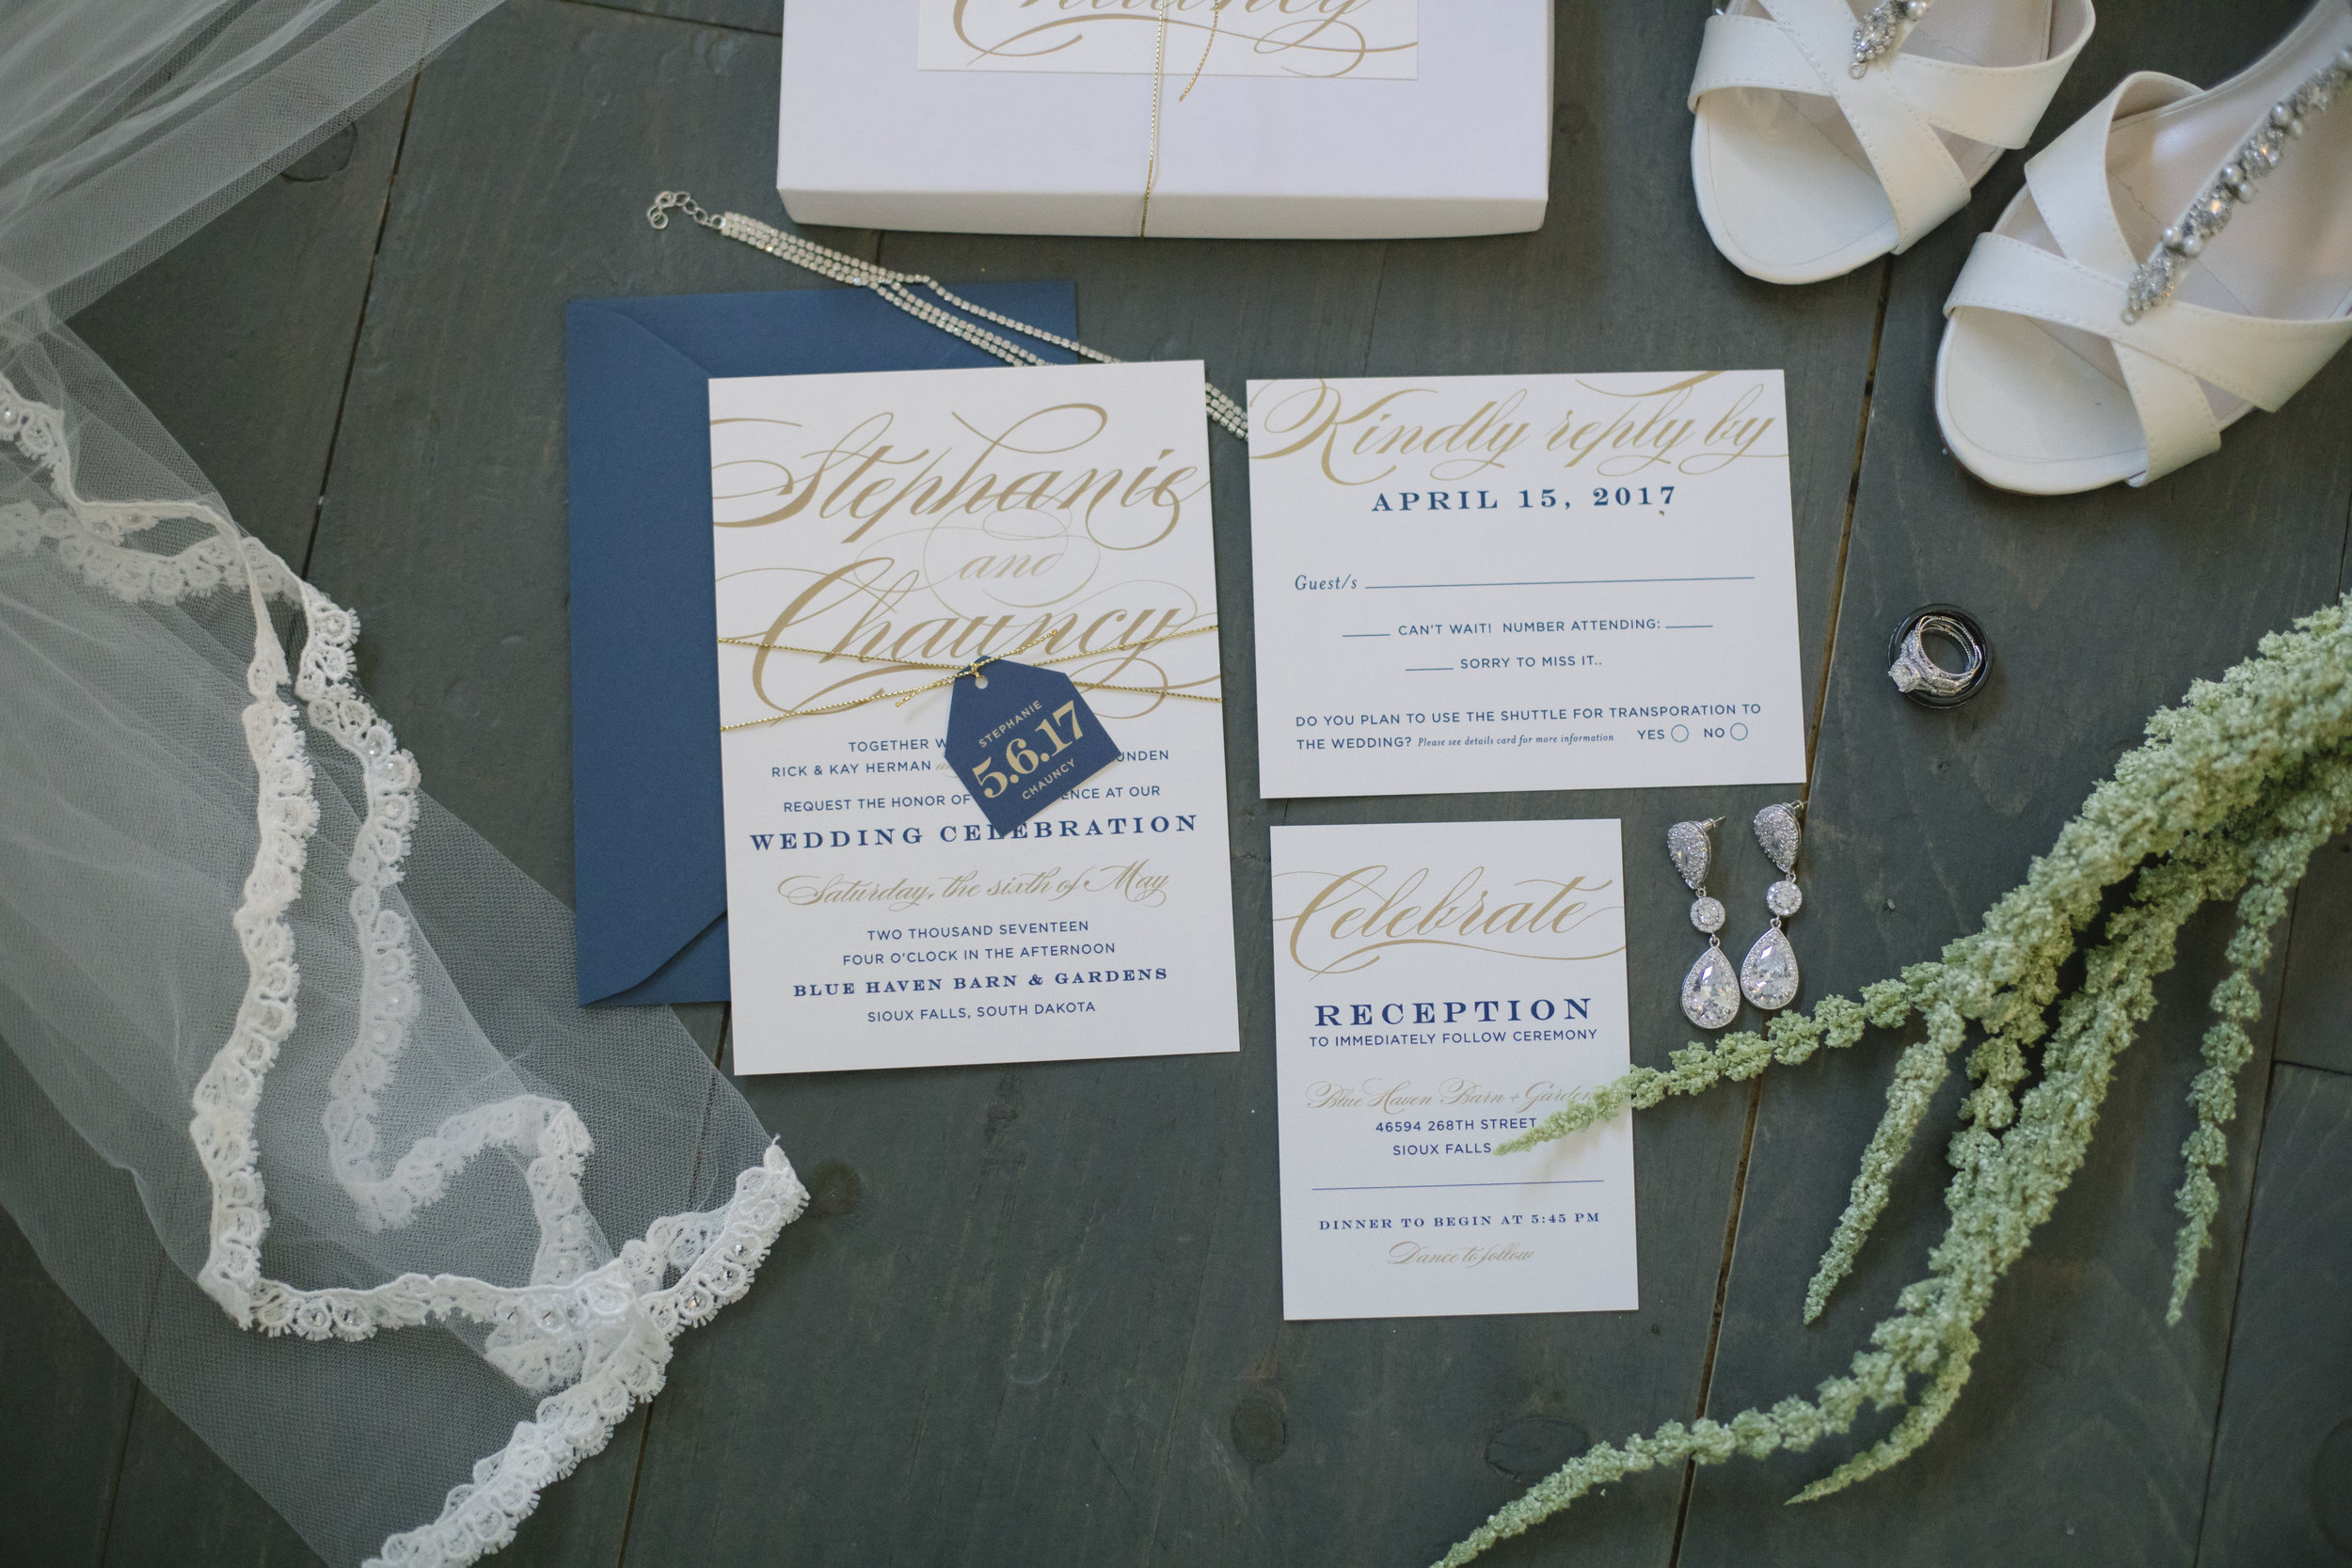 Bethany Melvin Photography | Sioux Falls Wedding Photography | Blue Haven Barn